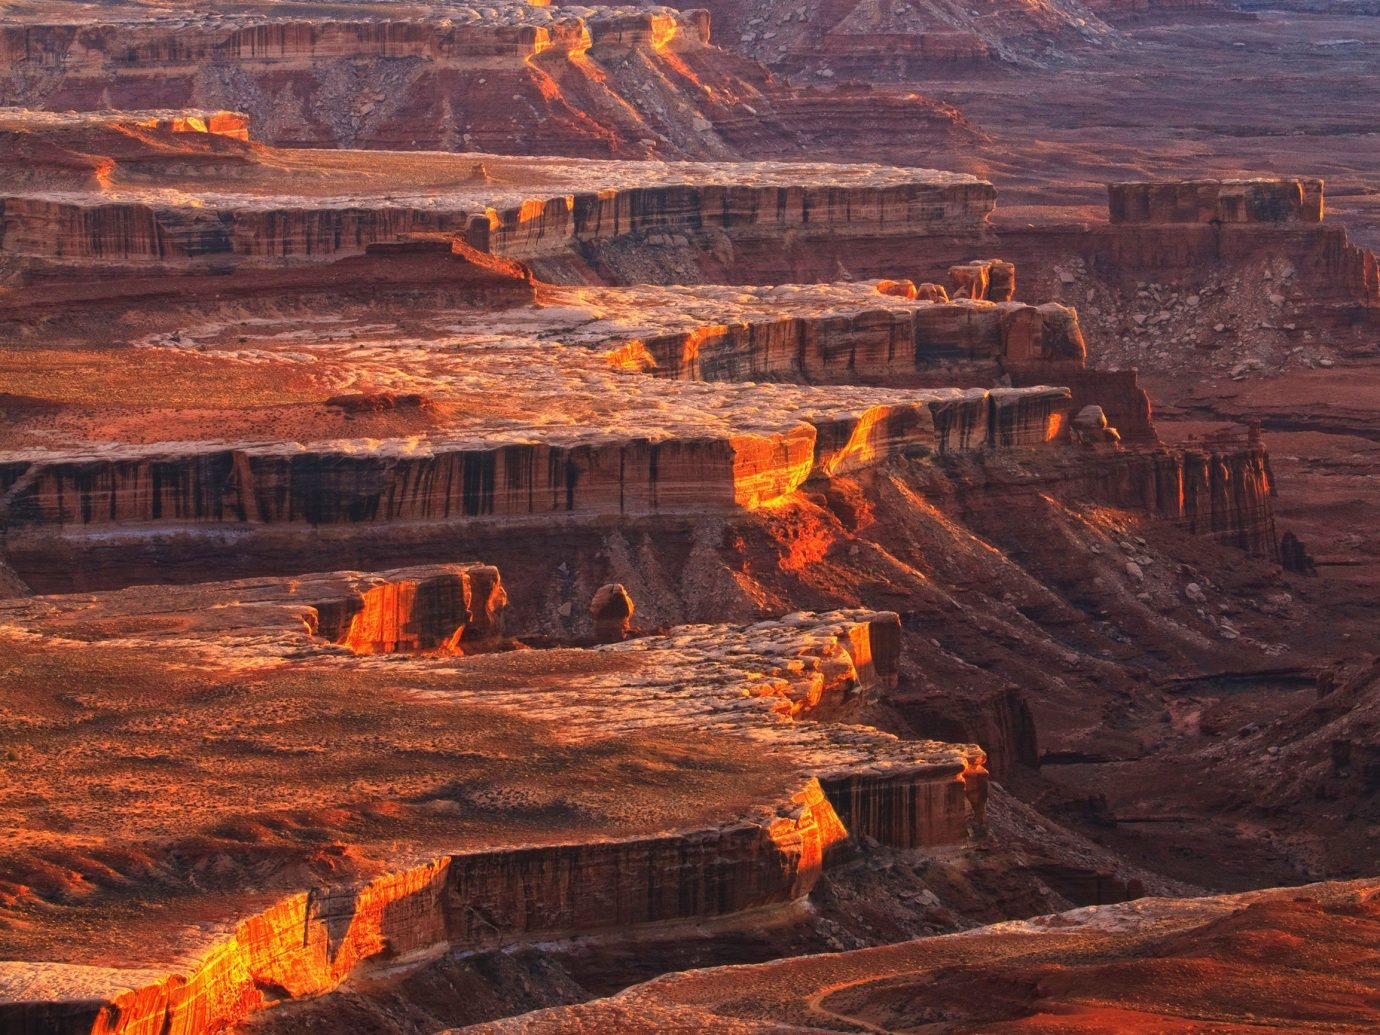 Health + Wellness Outdoors + Adventure valley canyon Nature mountain geographical feature outdoor orange landform natural environment wilderness butte geological phenomenon landscape rock plateau sunrise badlands Sunset geology formation terrain